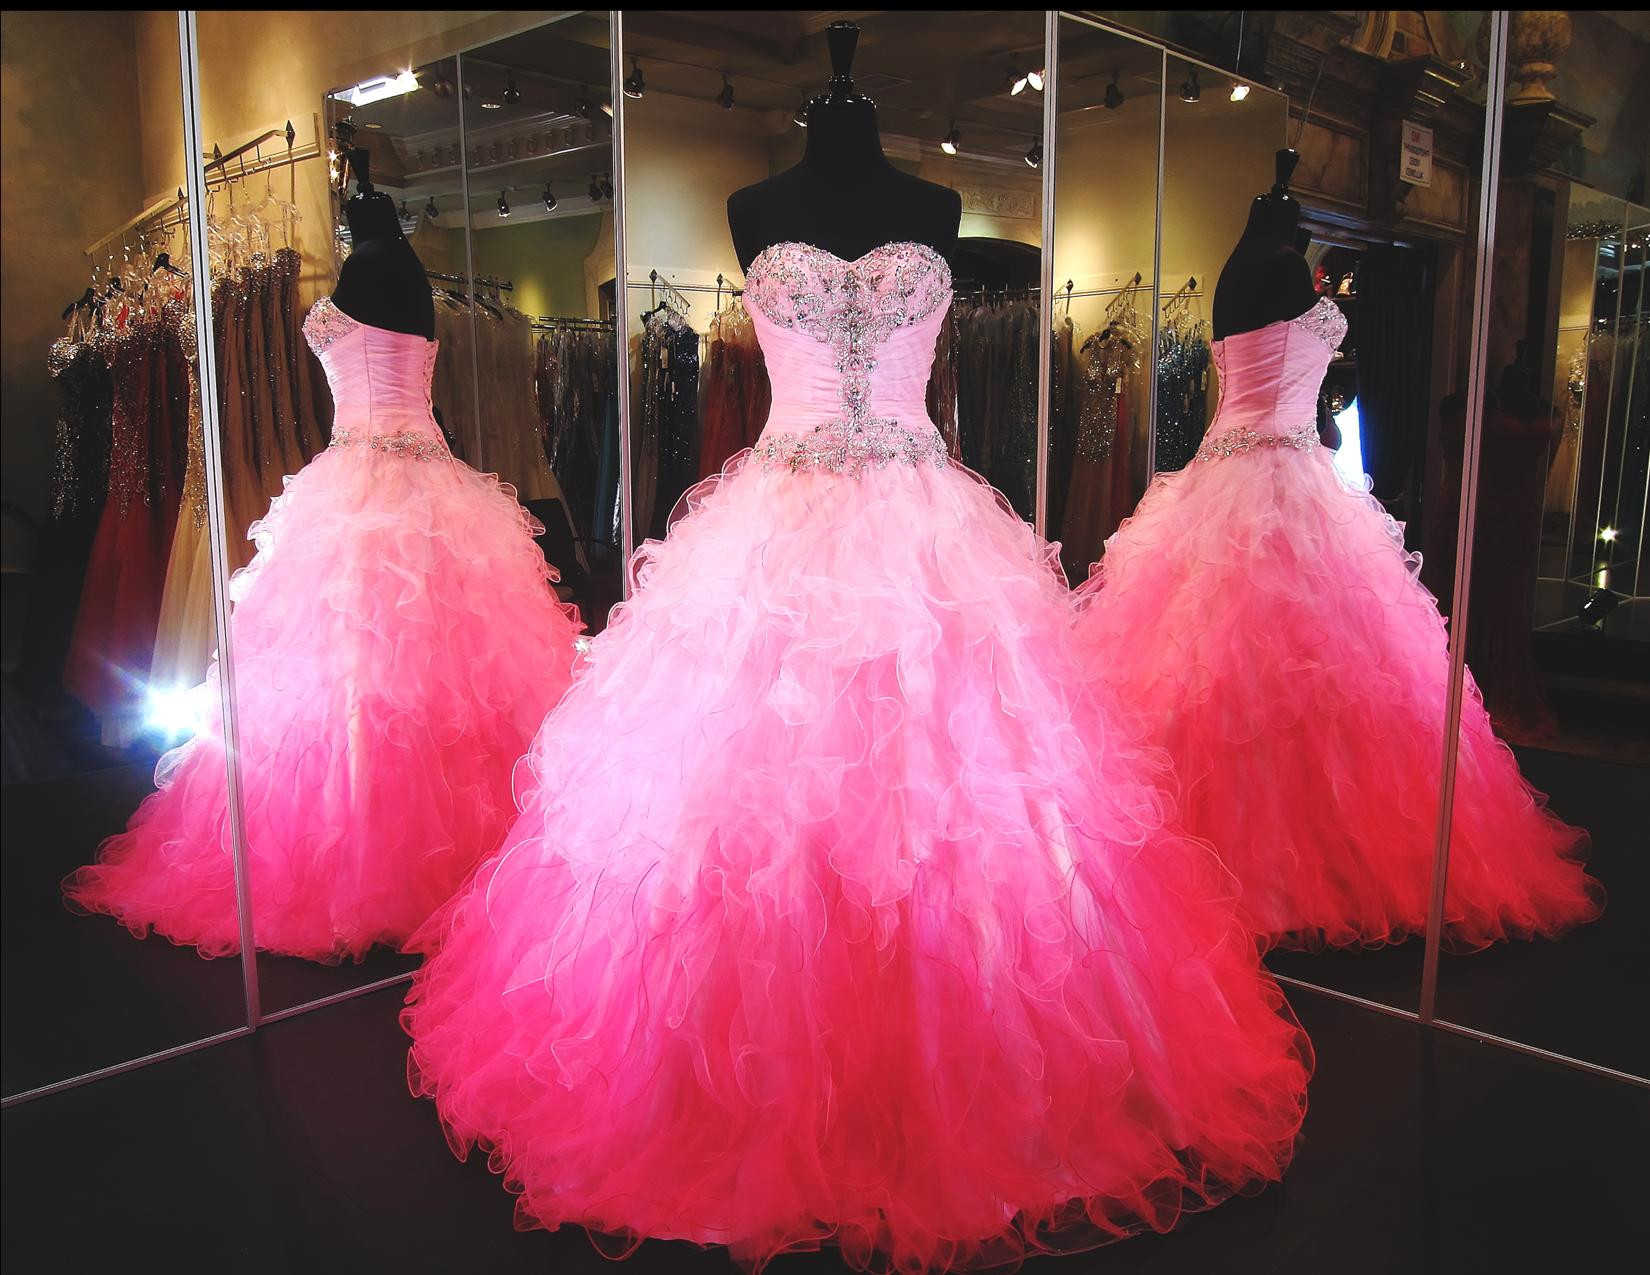 481ea970a1d Fuchsia Sweetheart Ruffles Ombre Ball Gown Prom Dresses Quinceanera Dress  on Luulla